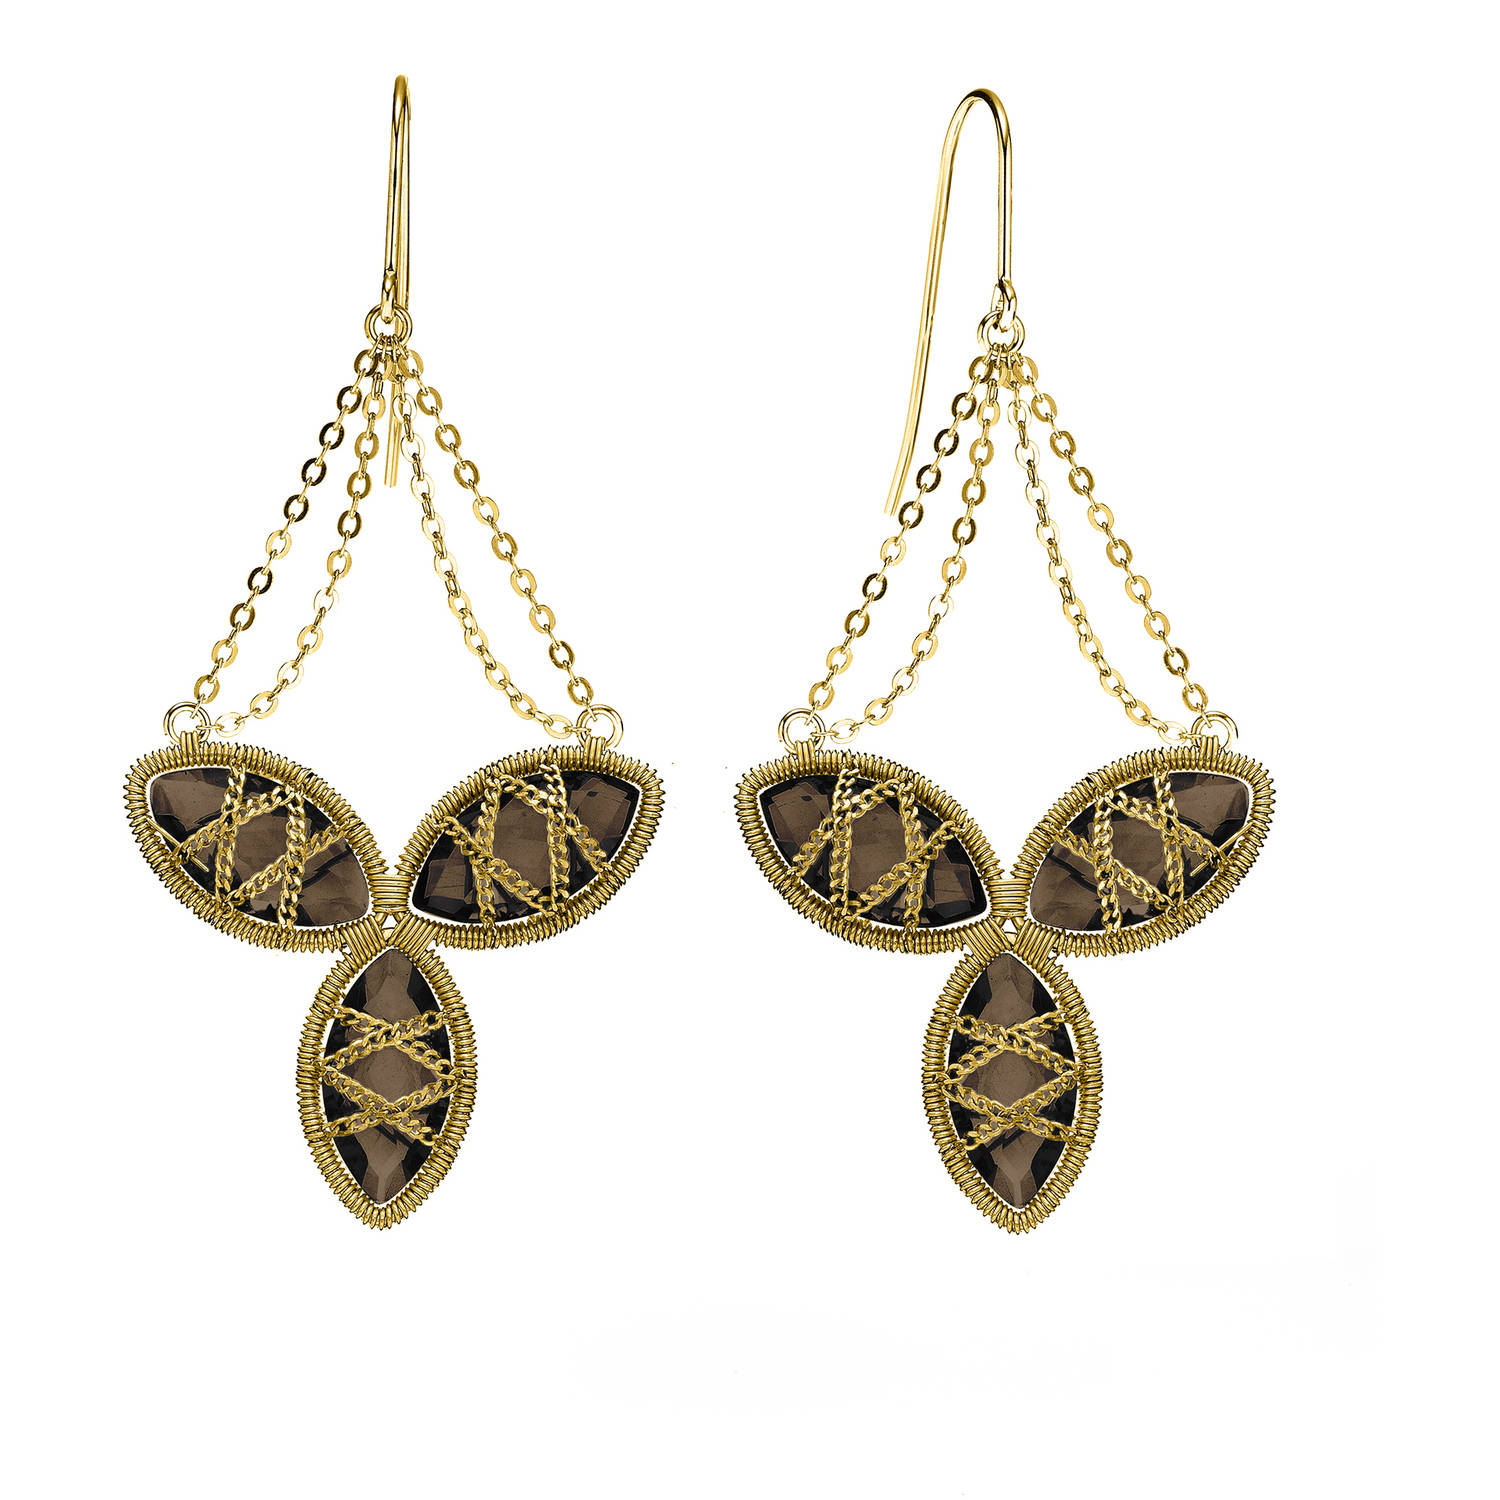 Image of 5th & Main 18kt Gold over Sterling Silver Hand-Wrapped Triple Floral Smokey Quartz Stone Earrings